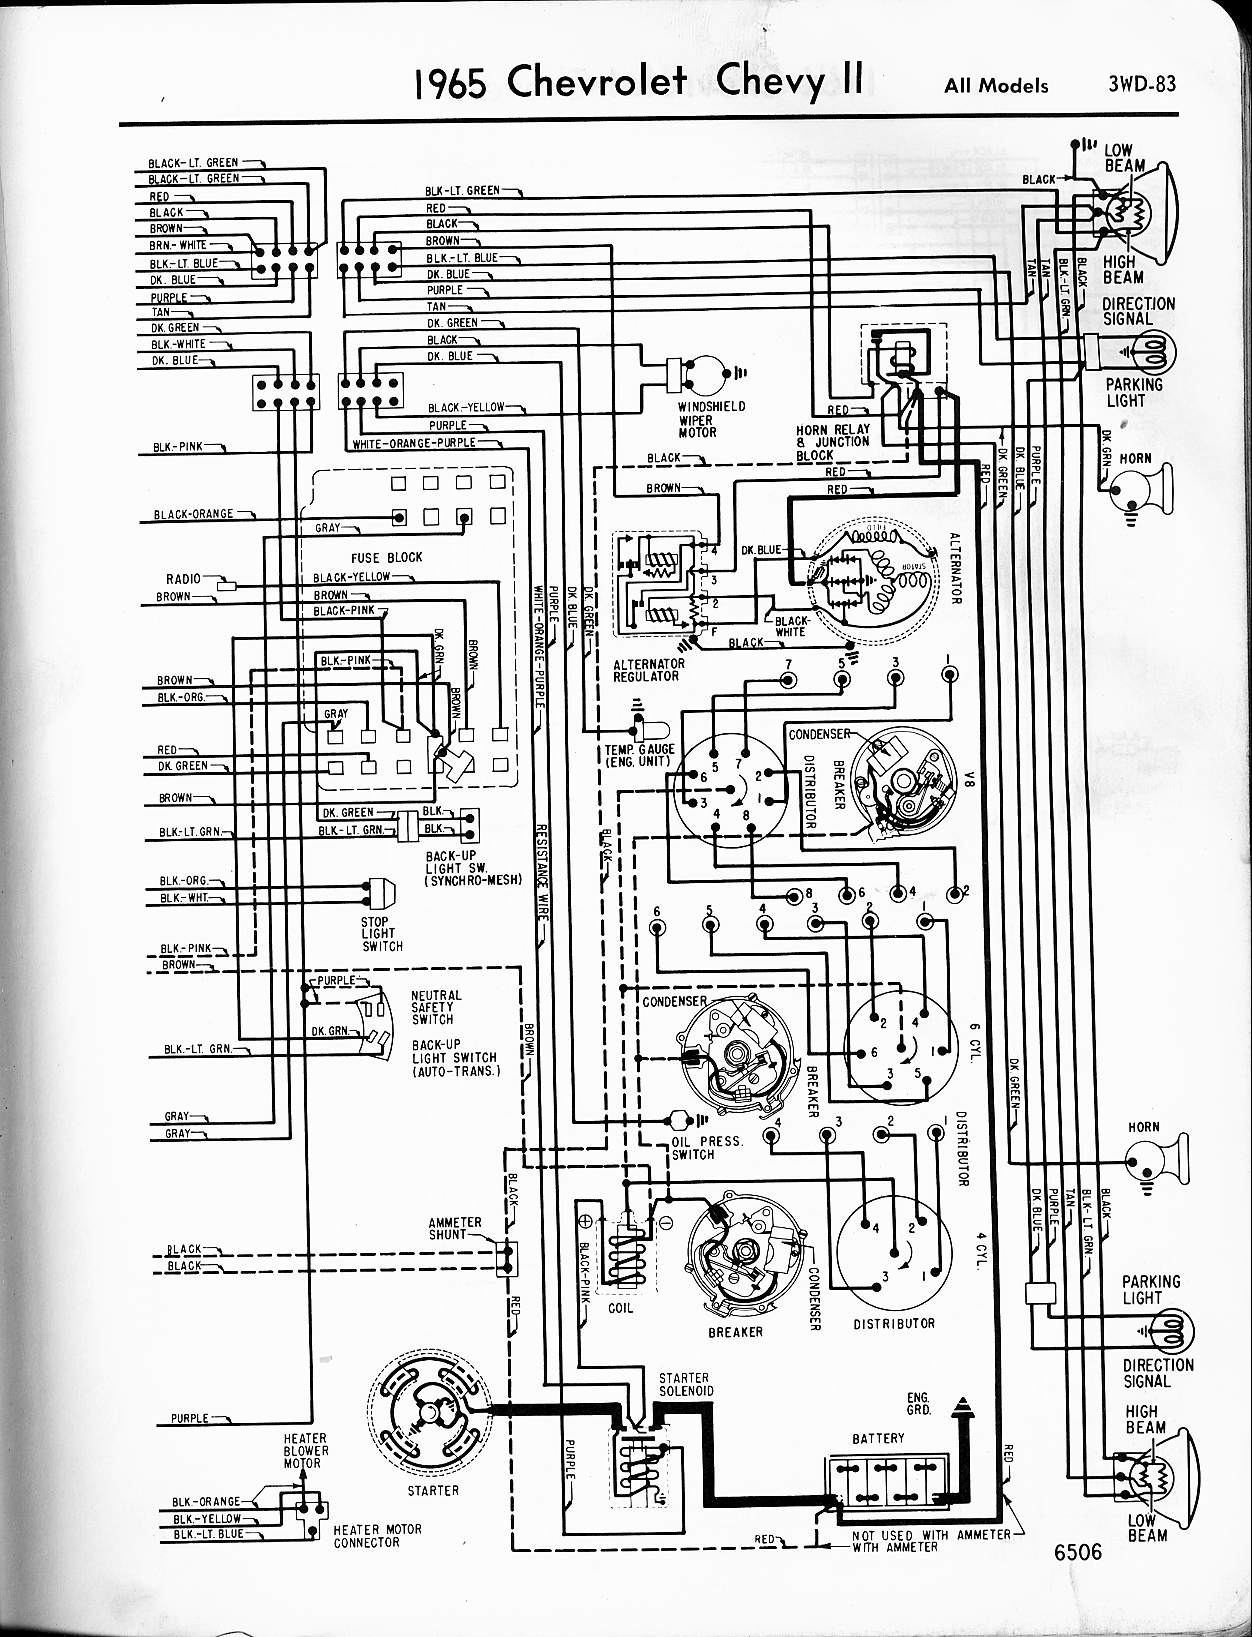 Miraculous 1958 Gmc Truck Wiring Diagram Basic Electronics Wiring Diagram Wiring Cloud Peadfoxcilixyz